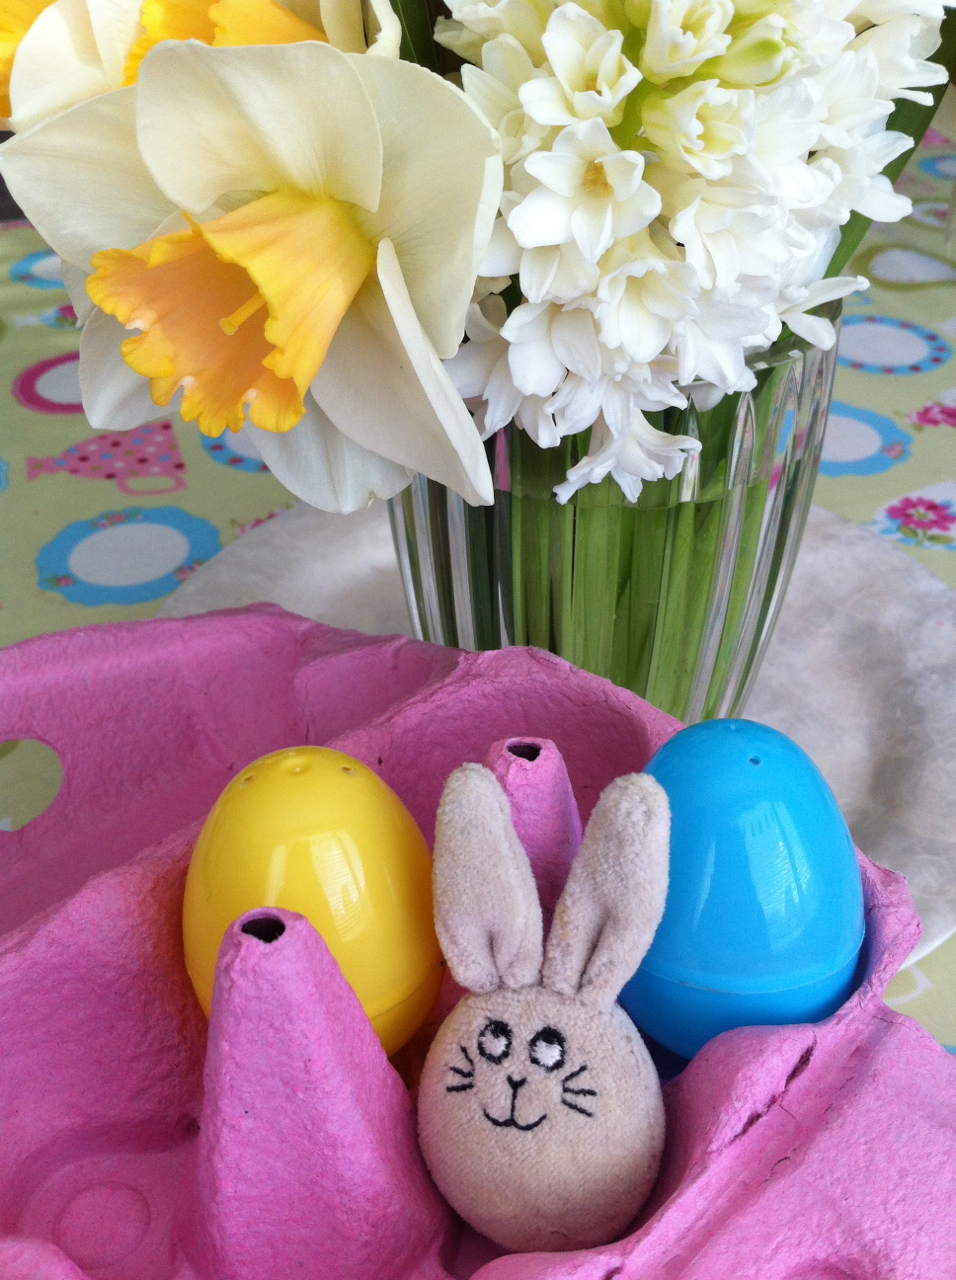 What to do with those plastic eggs!